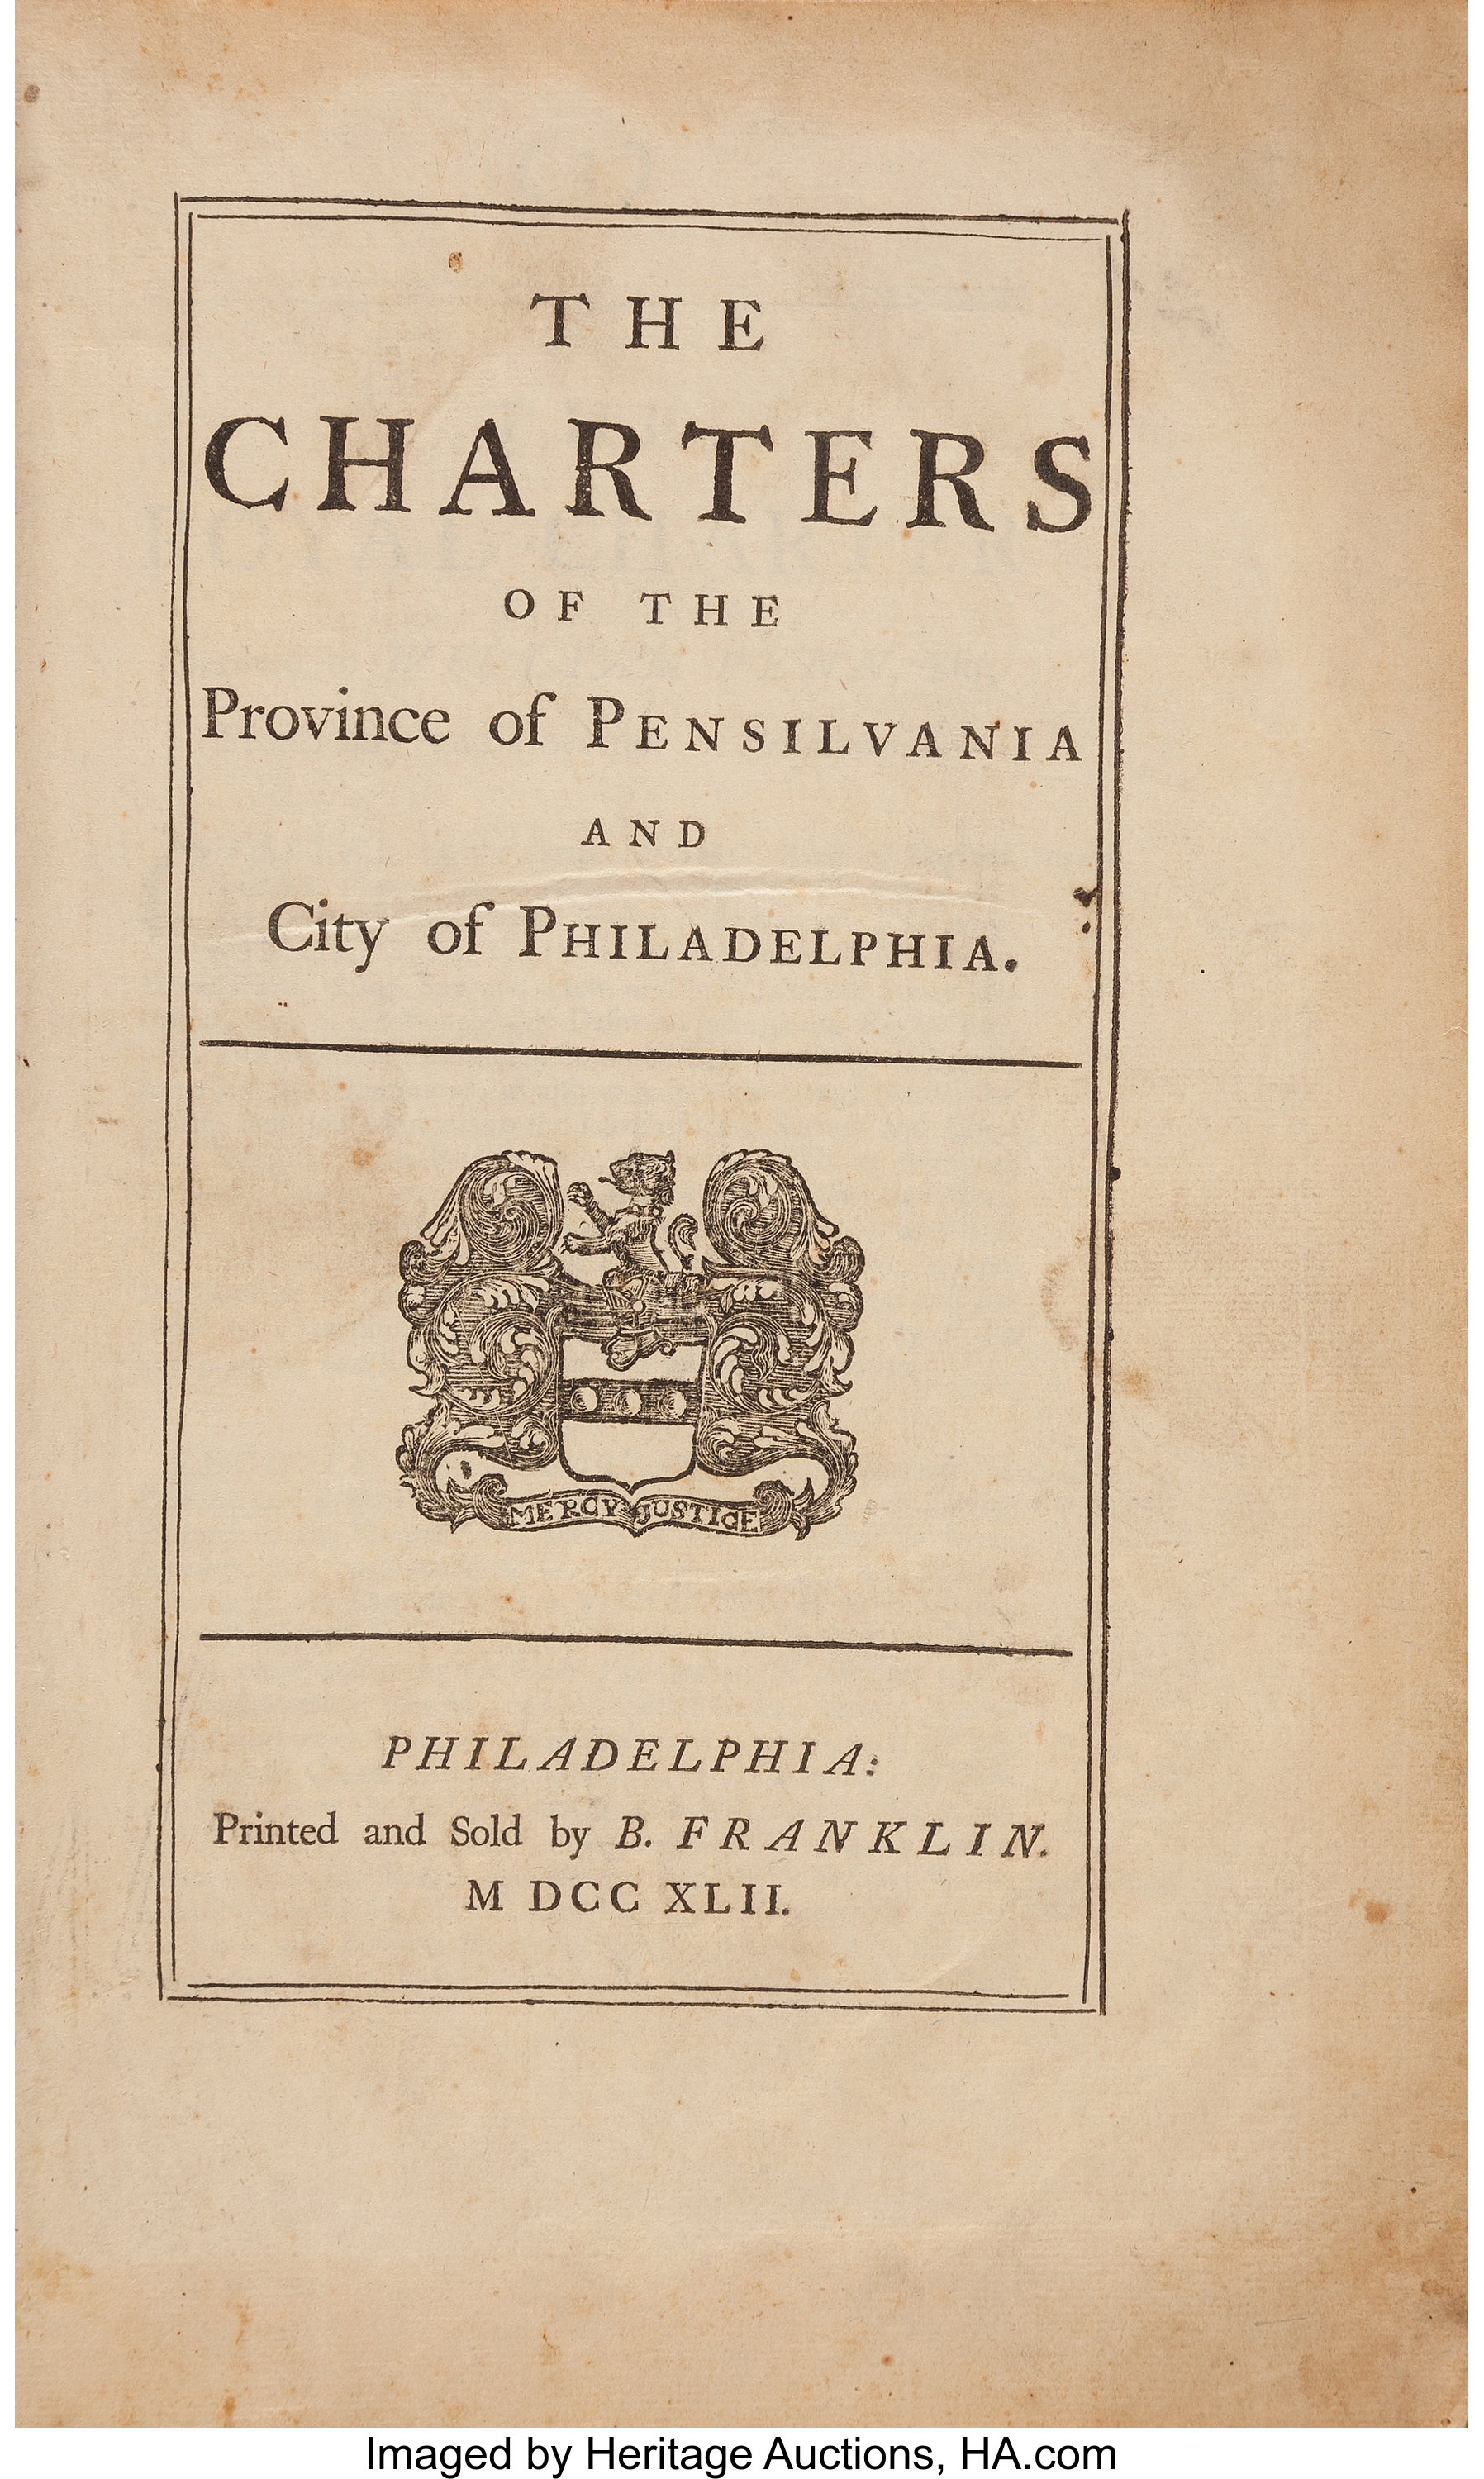 [Benjamin Franklin, printer]. The Charters of the Province of Philadelphia and City of Philadelphia